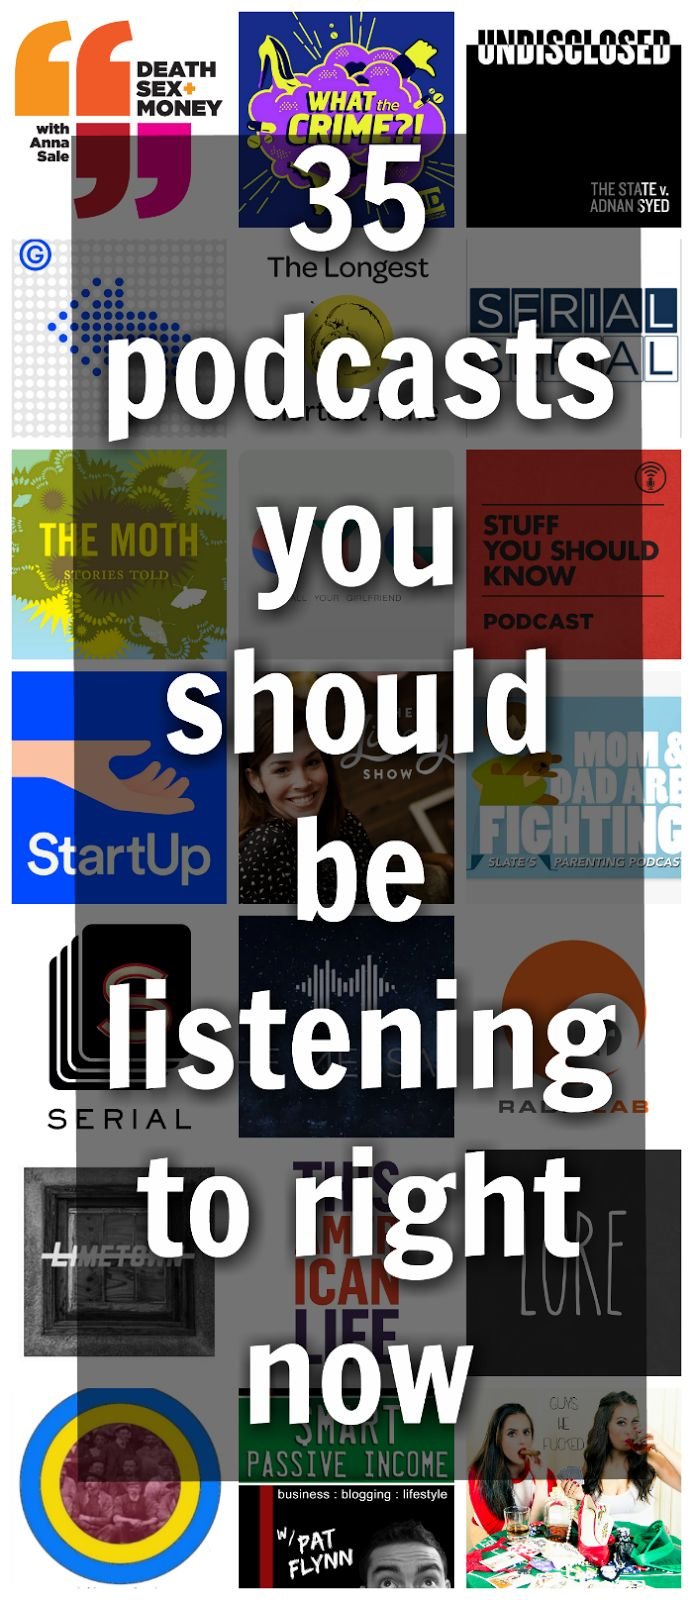 My Favorite Podcasts (Running from the Law) | podcasts | Pinterest | Books, Reading and TED Talks